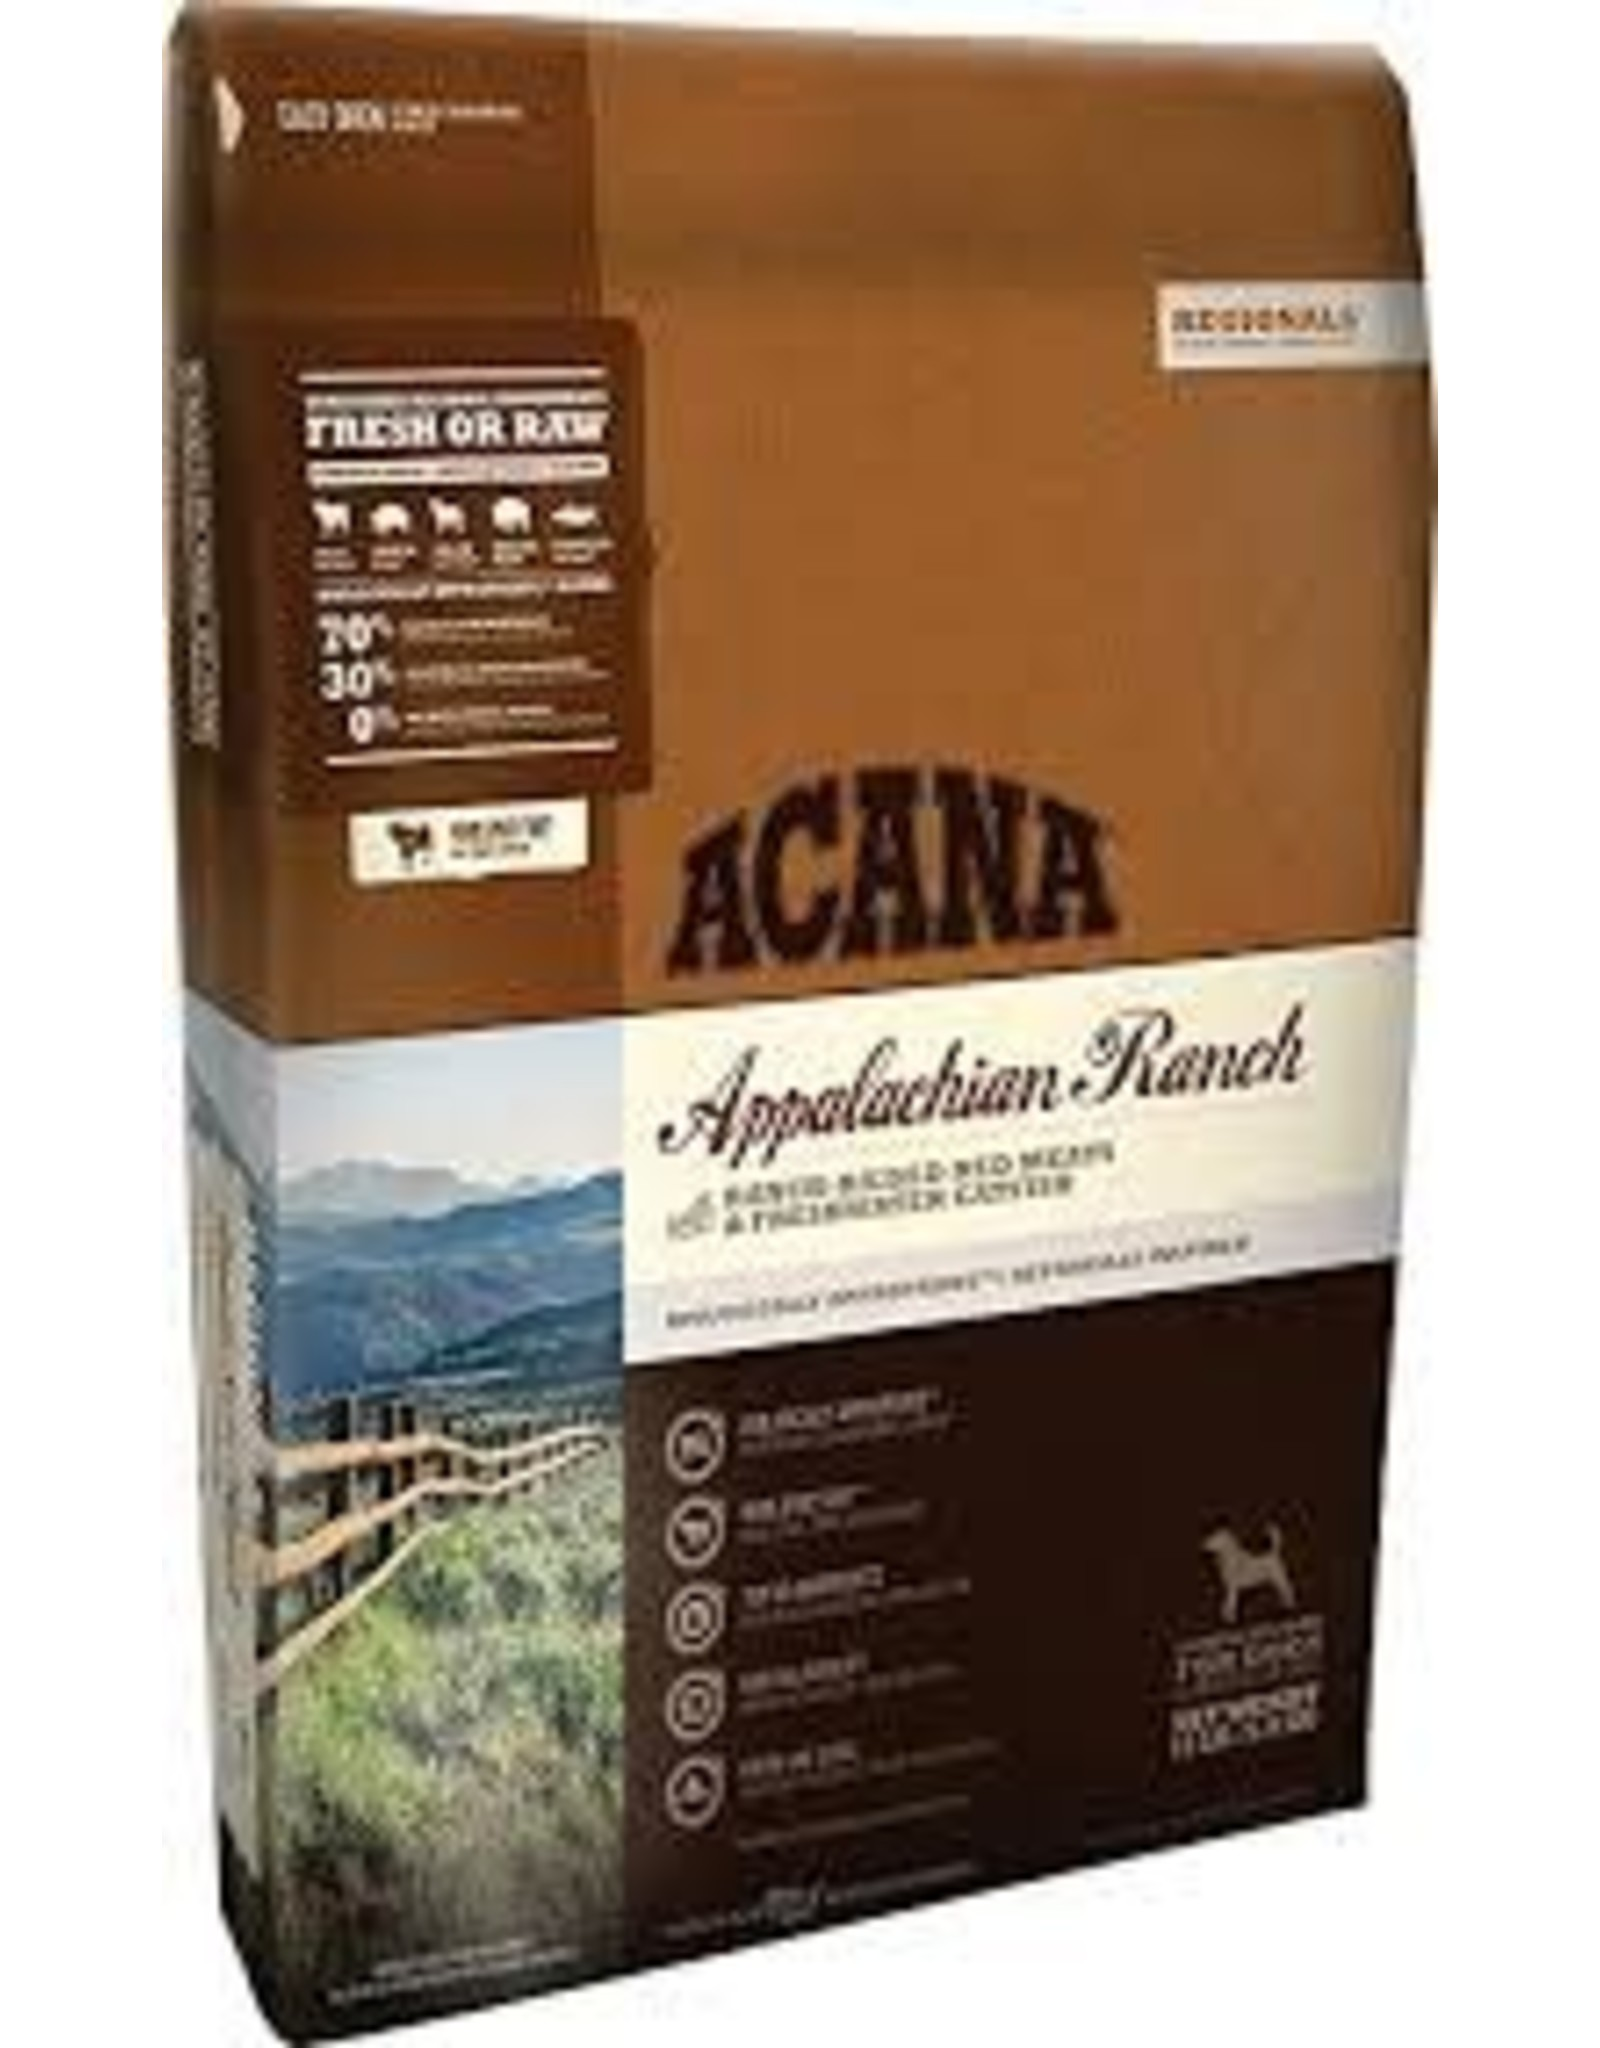 ACANA ACANA APPALACHIAN RANCH 13# *spec ord